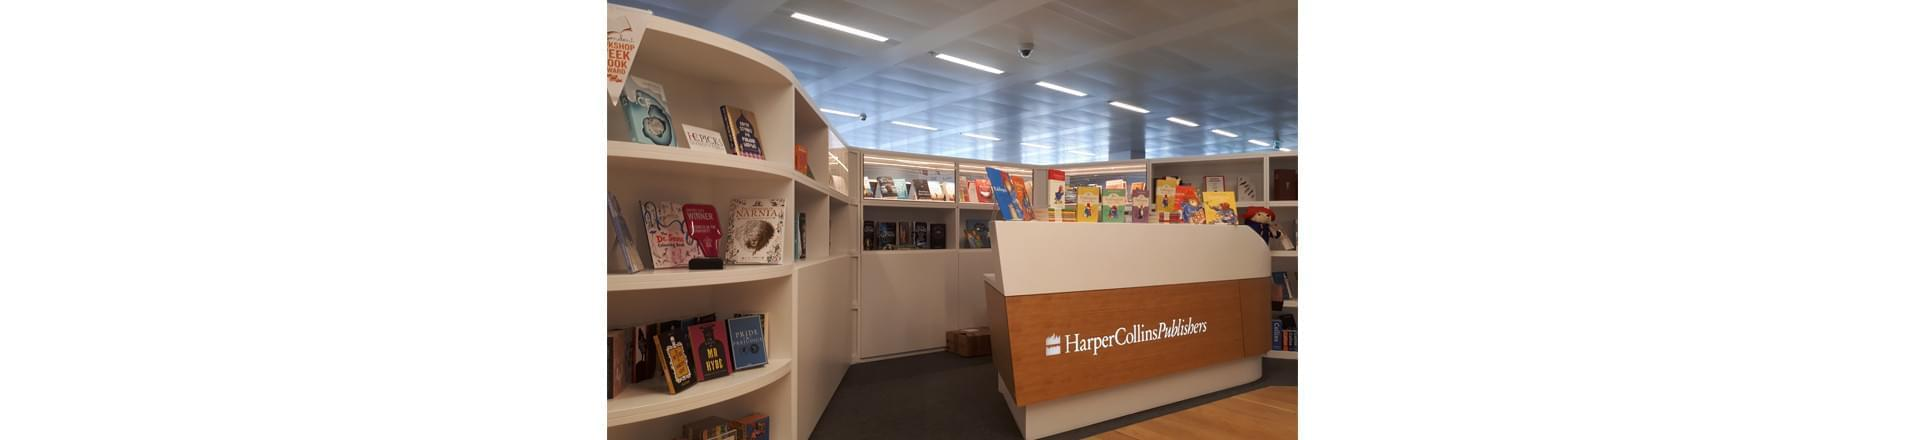 HarperCollins front desk with all of their most recent releases including exclusively diverse books chosen by the diversity forum